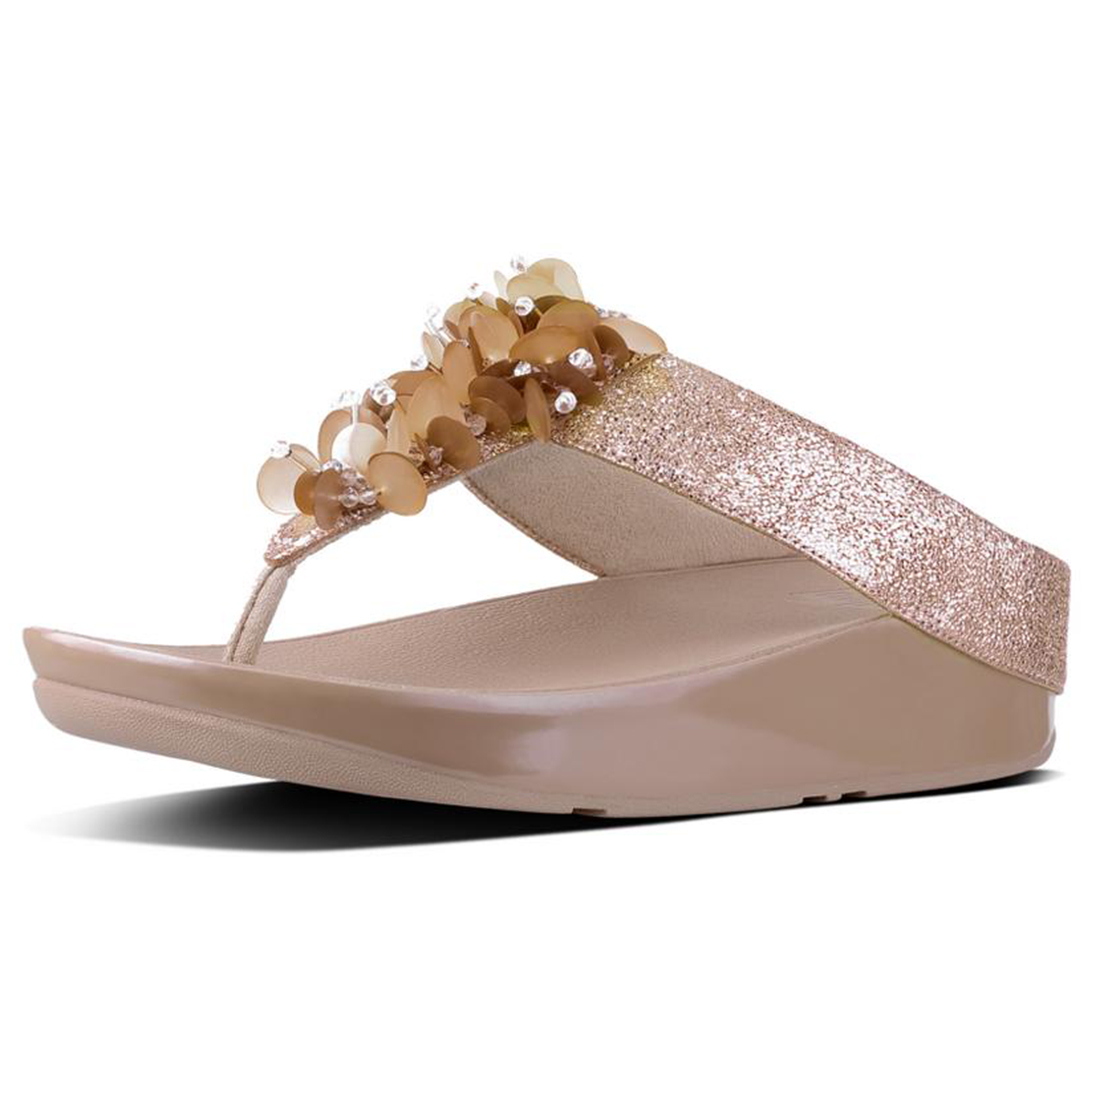 FitFlop Womens Boogaloo Economical, stylish, and eye-catching shoes